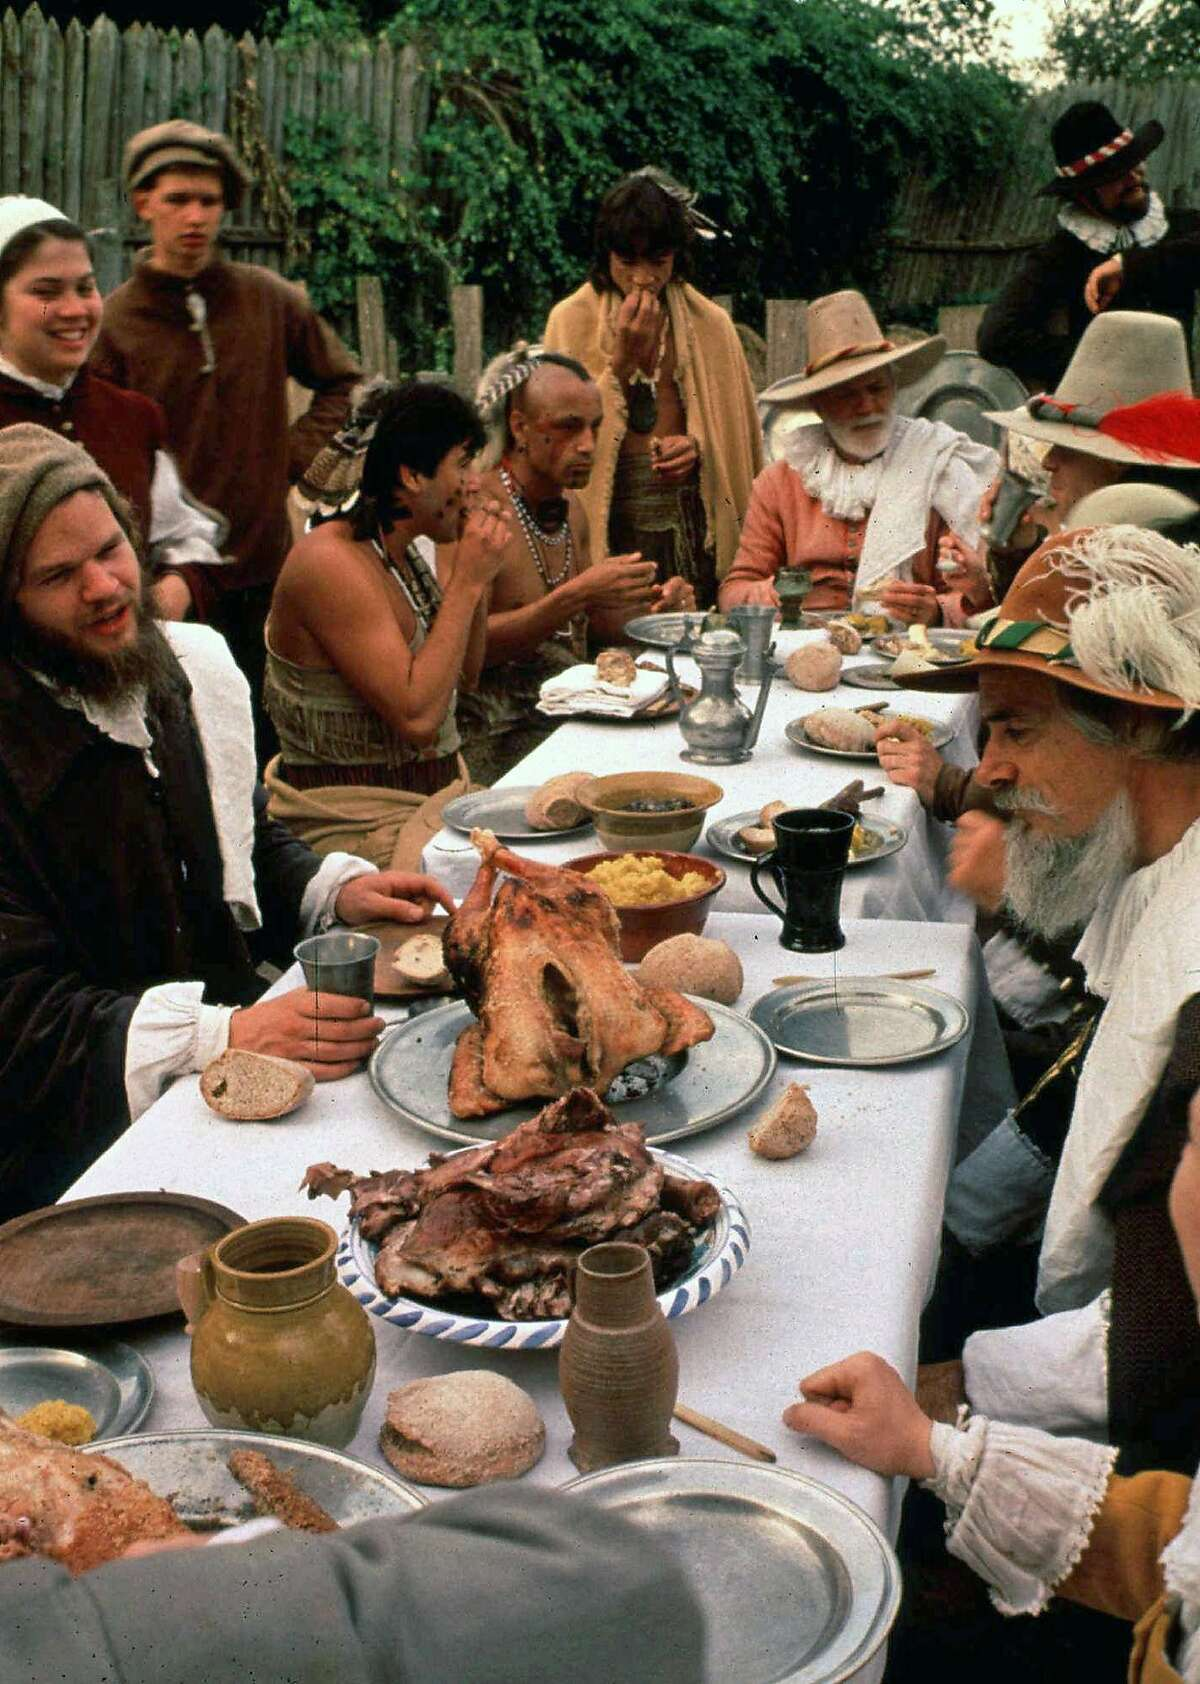 ** FOR IMMEDIATE RELEASE--FILE **This undated photo provided by Plimoth Plantation, shows a reenactment of the first Thanksgiving at the Plimoth Plantation in Plymouth, Mass. According to food writer Linda Beaulieu, the first Thanksgiving did not include Turkey or some of the other food items associated with the holiday. (AP Photo/Plimoth Plantation, Ted Curtin/FILE)